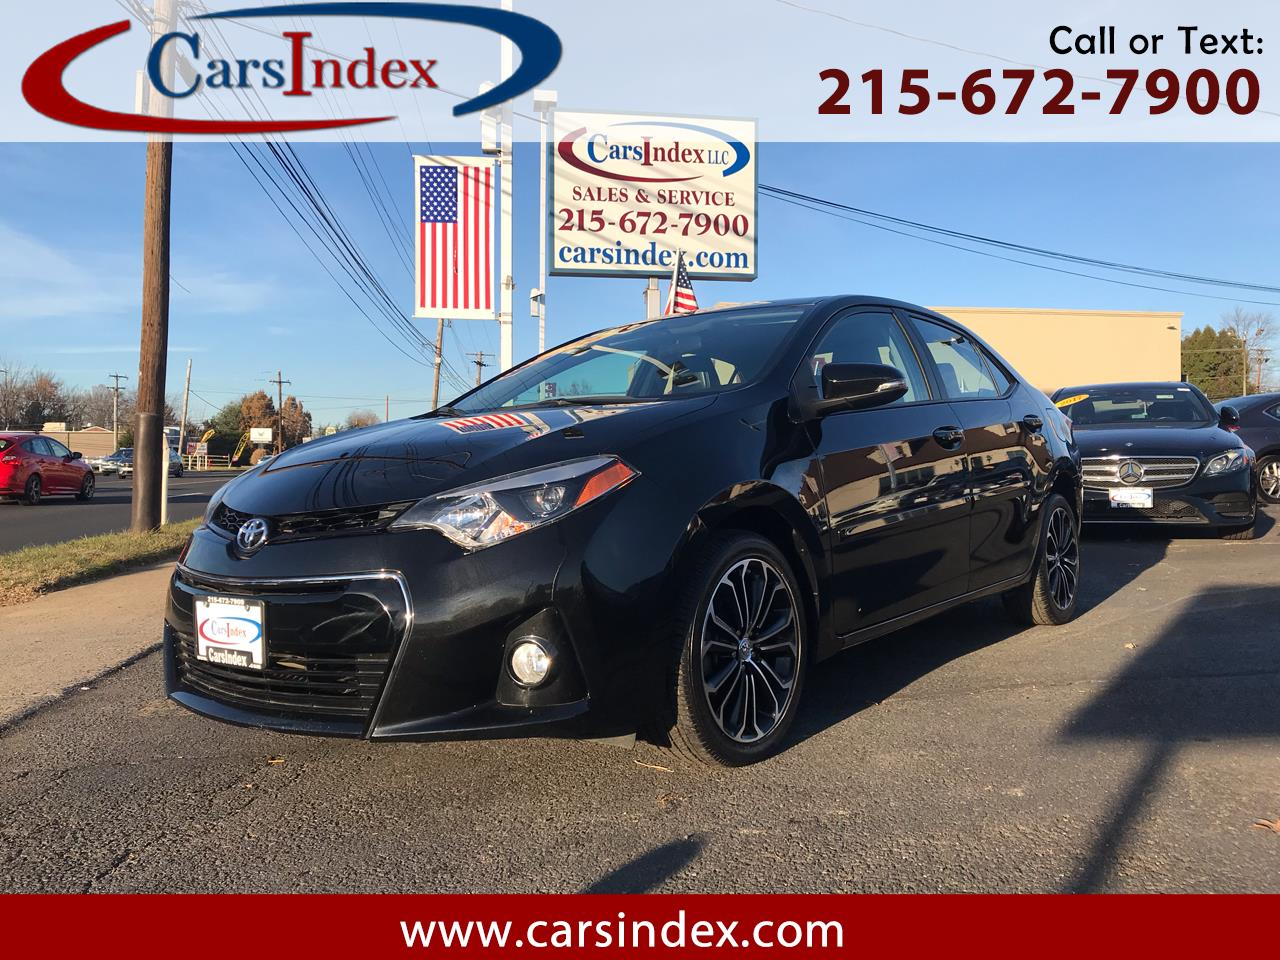 2016 Toyota Corolla 4dr Sdn CVT S w/Special Edition Pkg (Natl)